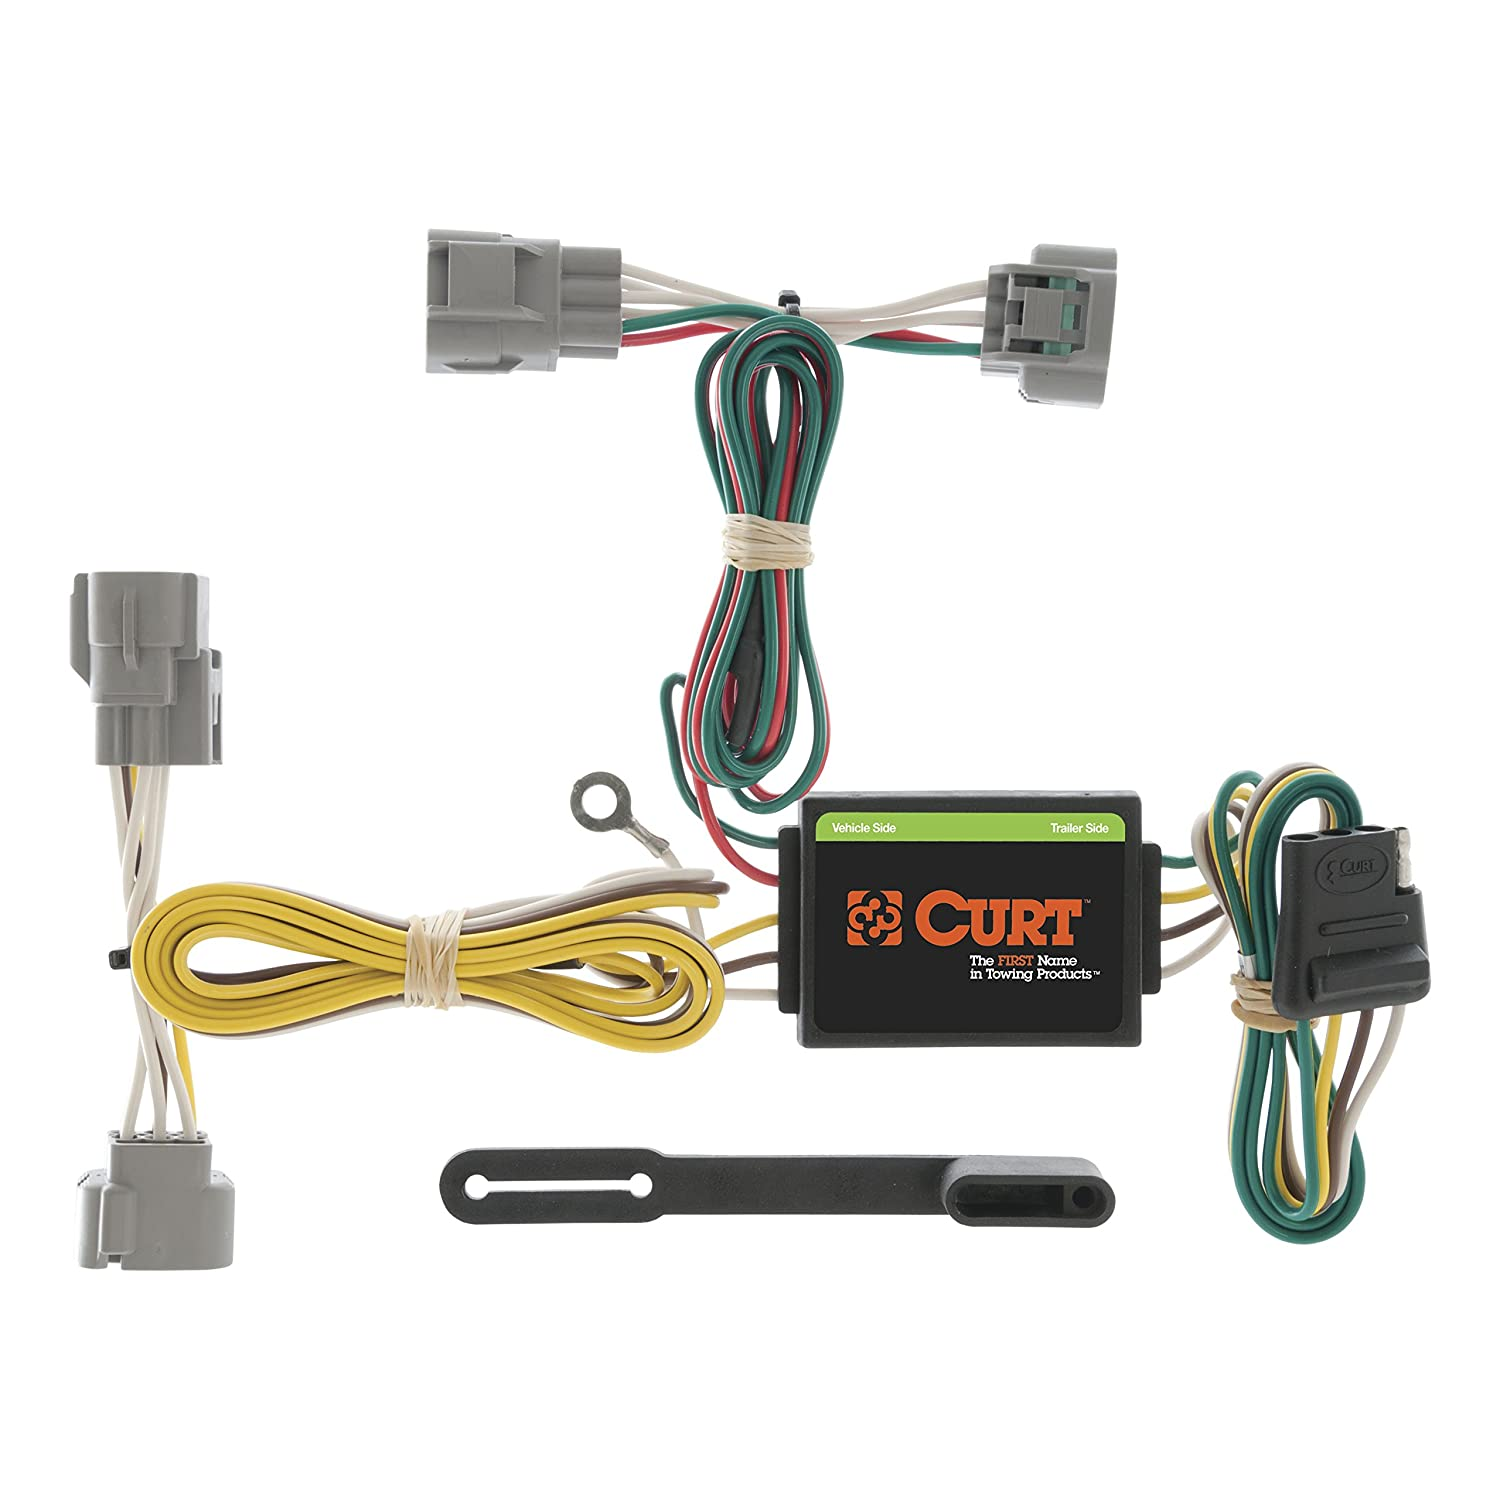 81 ef8zloFL._SL1500_ amazon com curt 55513 custom wiring harness automotive wiring harness for trailer at virtualis.co